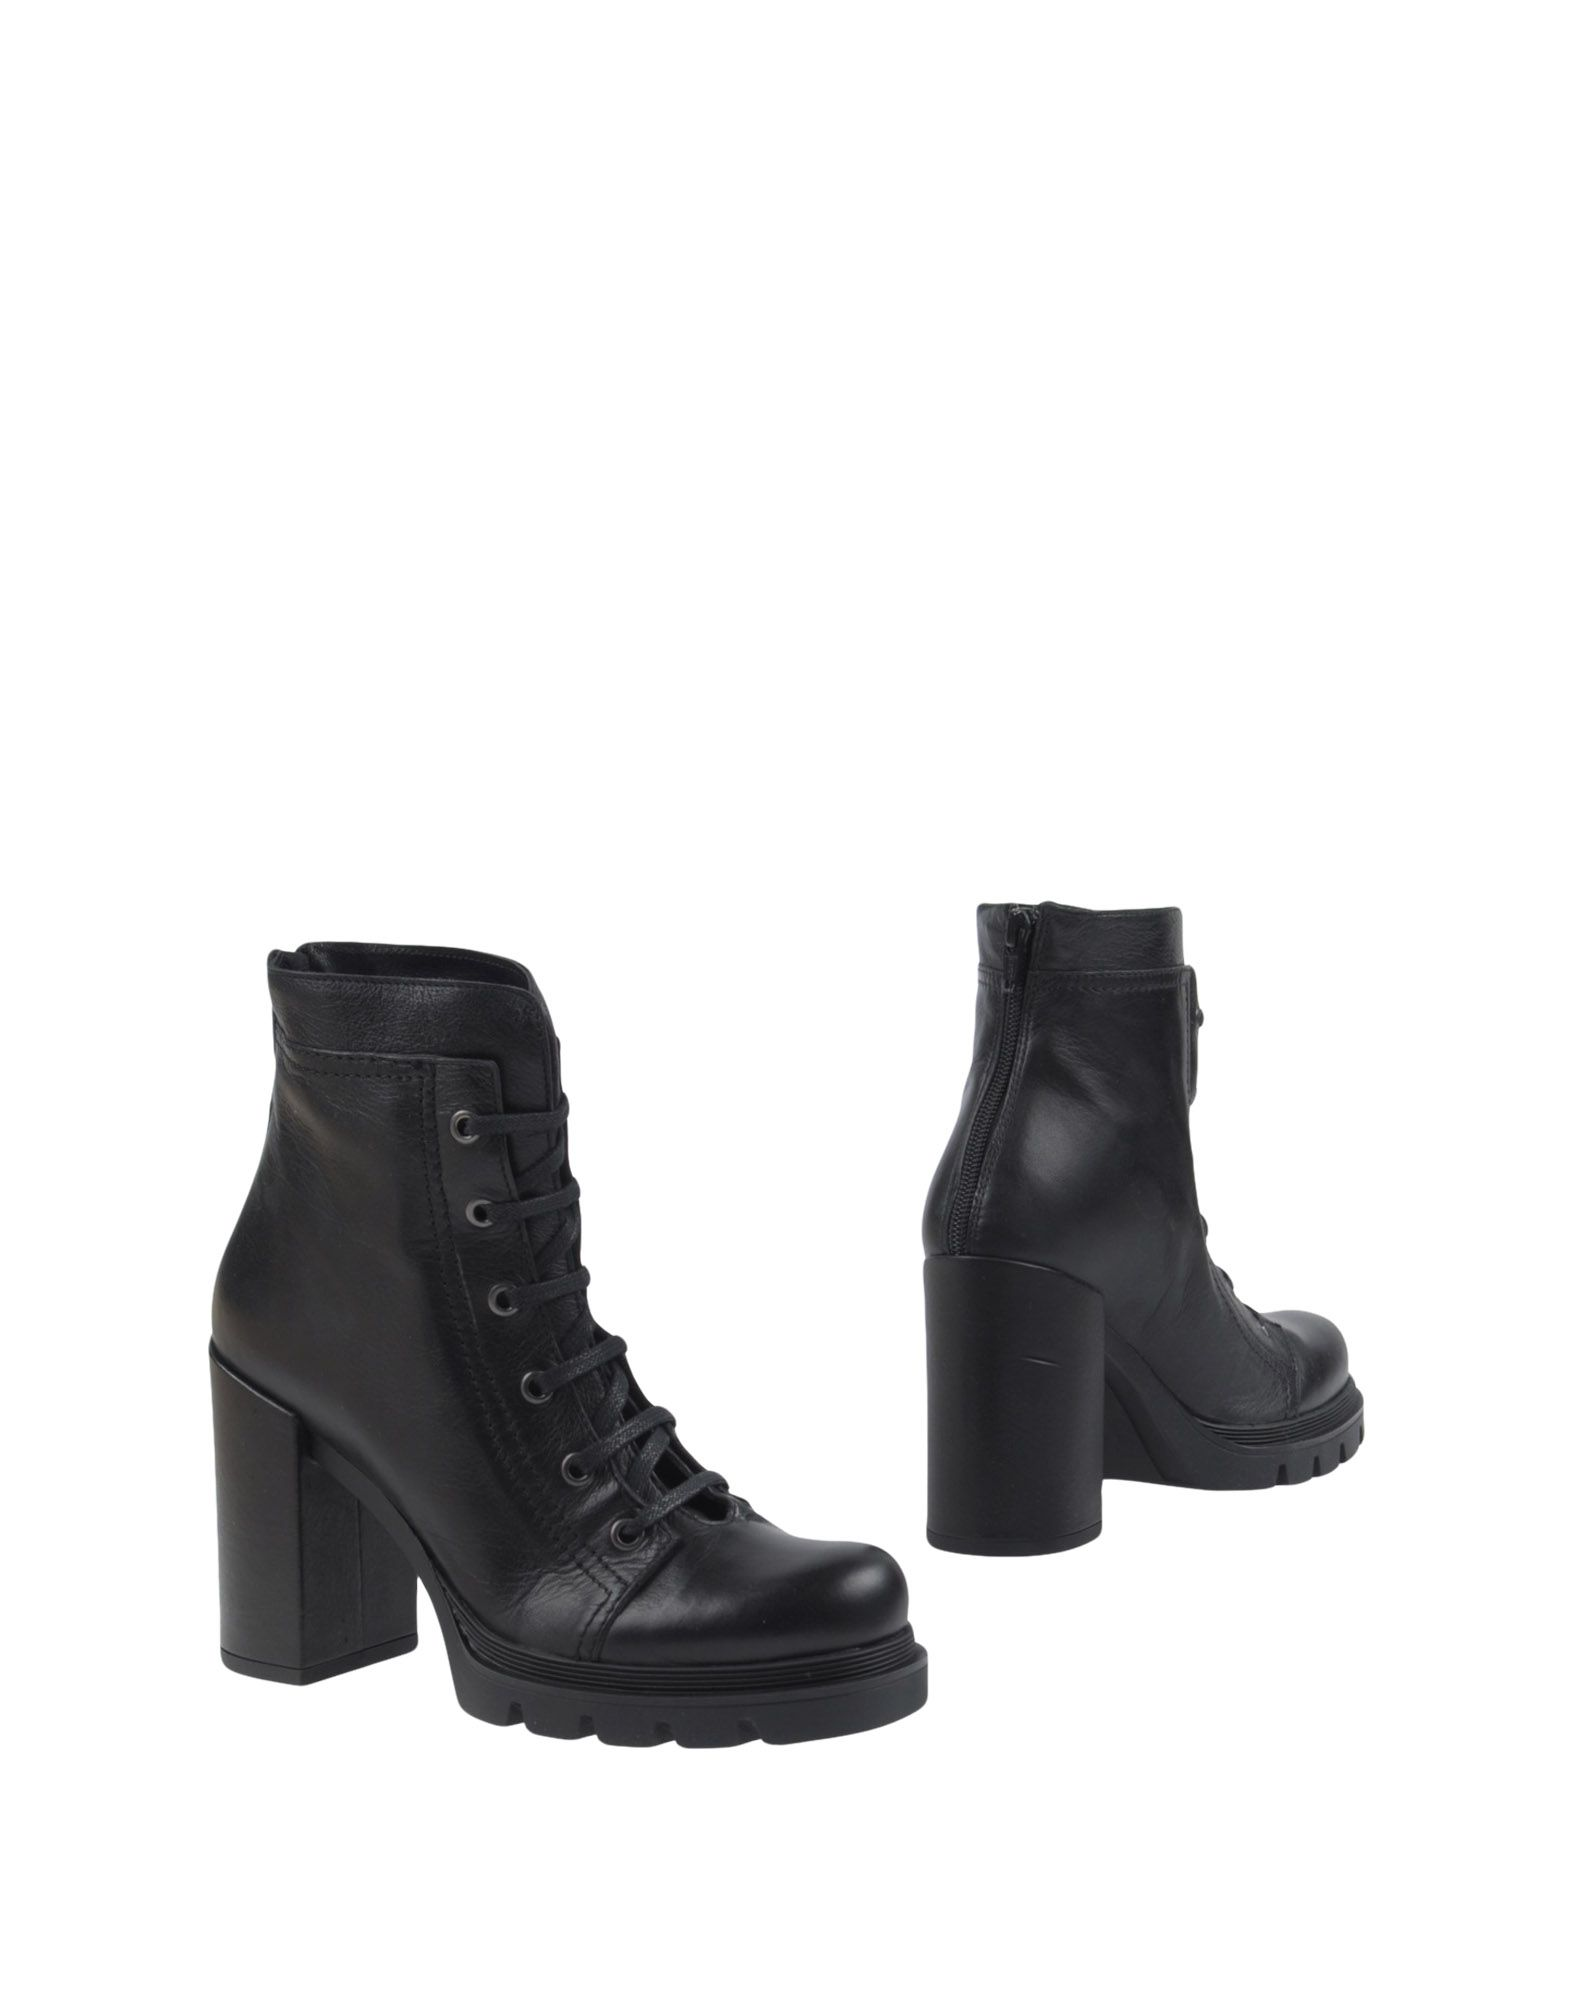 Emanuela Passeri Ankle Boot - Boots Women Emanuela Passeri Ankle Boots - online on  Australia - 11444606RB f3b2f5